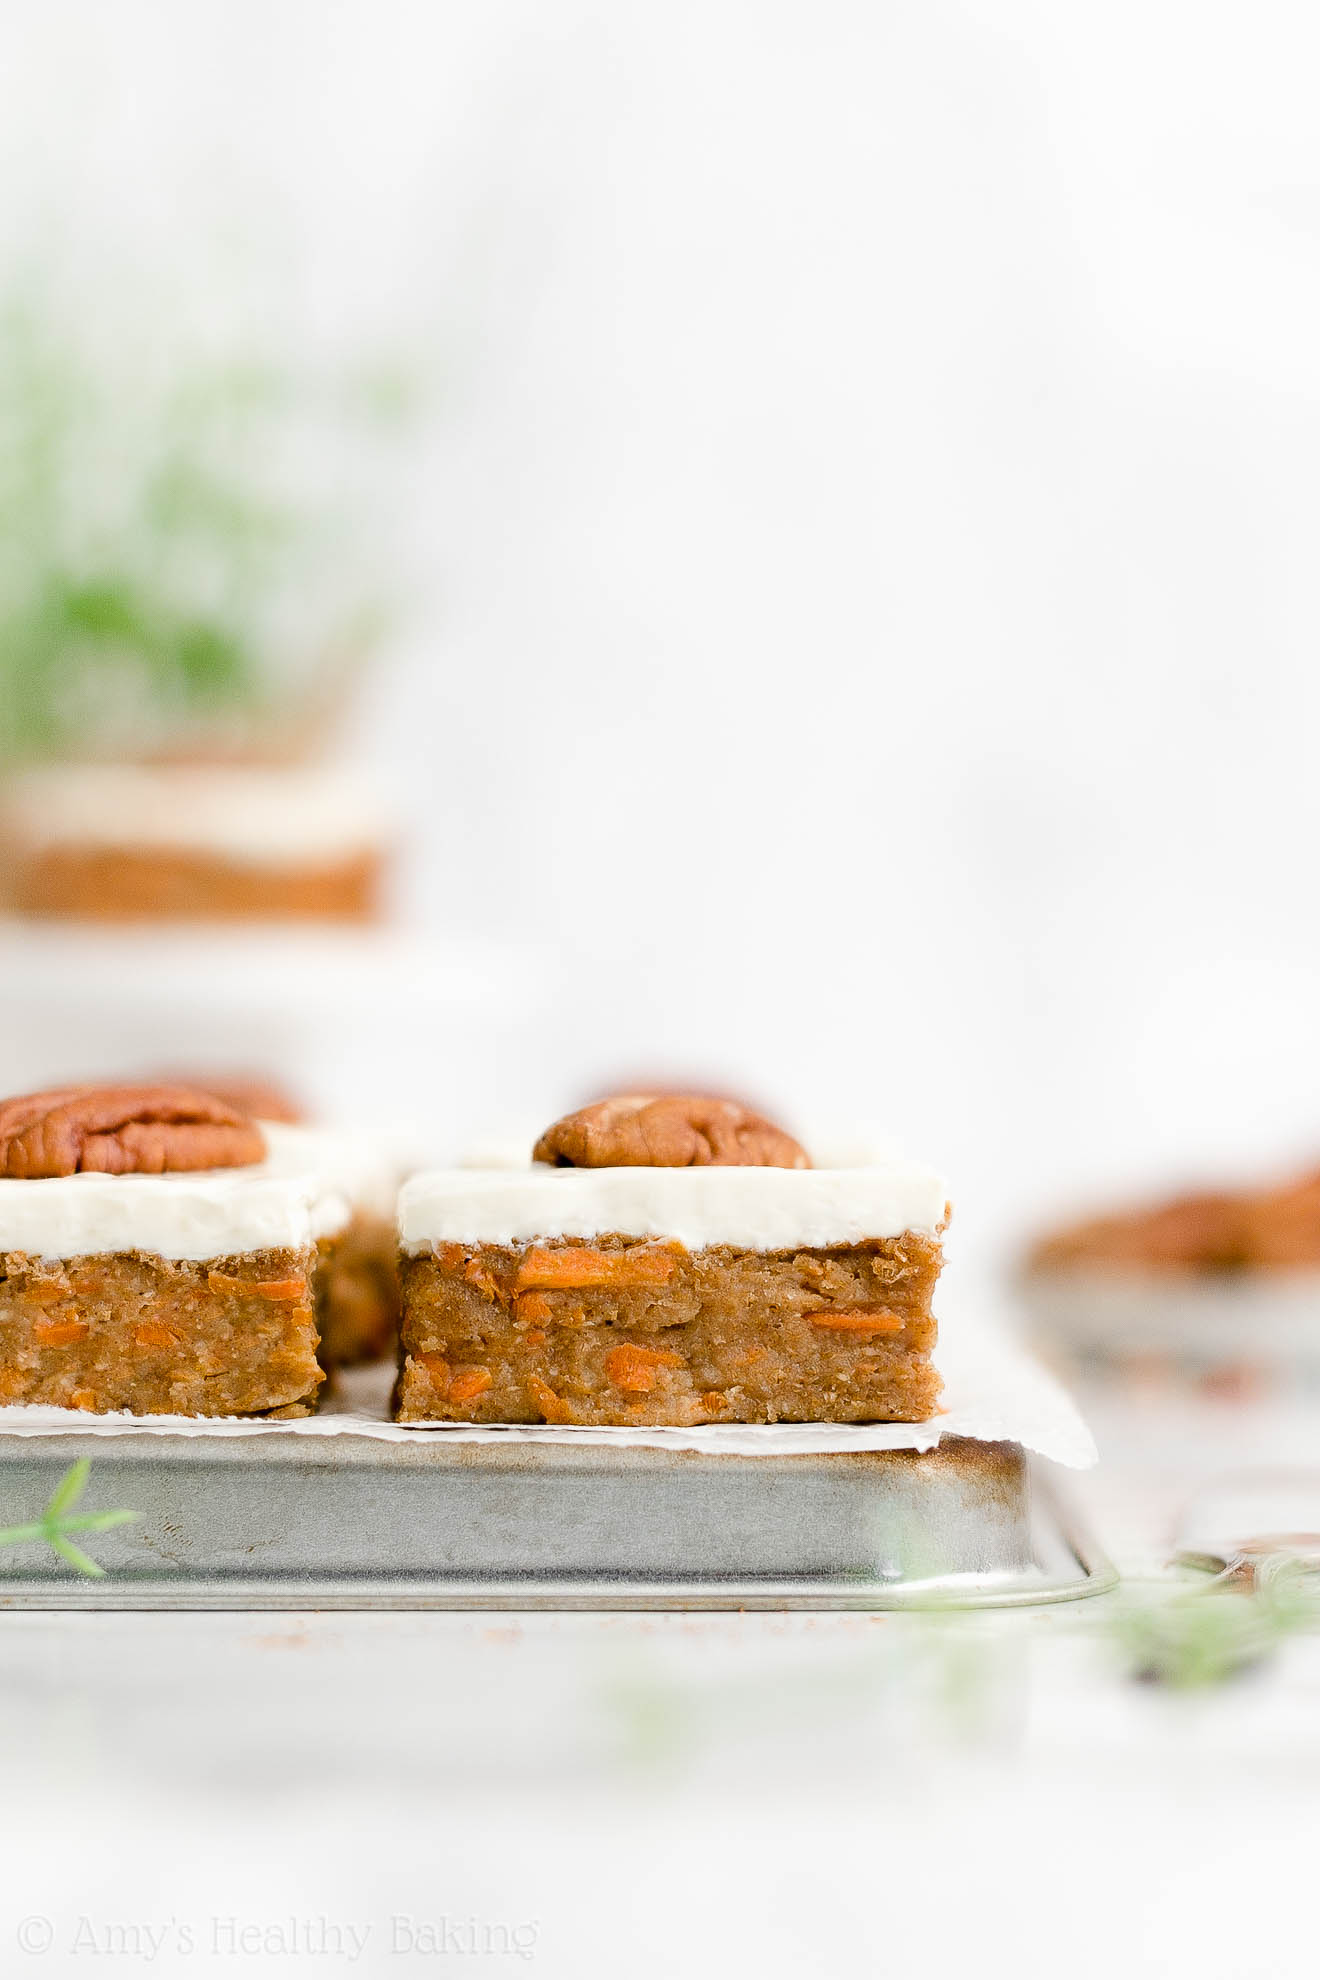 Best Healthy Gluten Free No Sugar Carrot Cake Bars with Cream Cheese Frosting